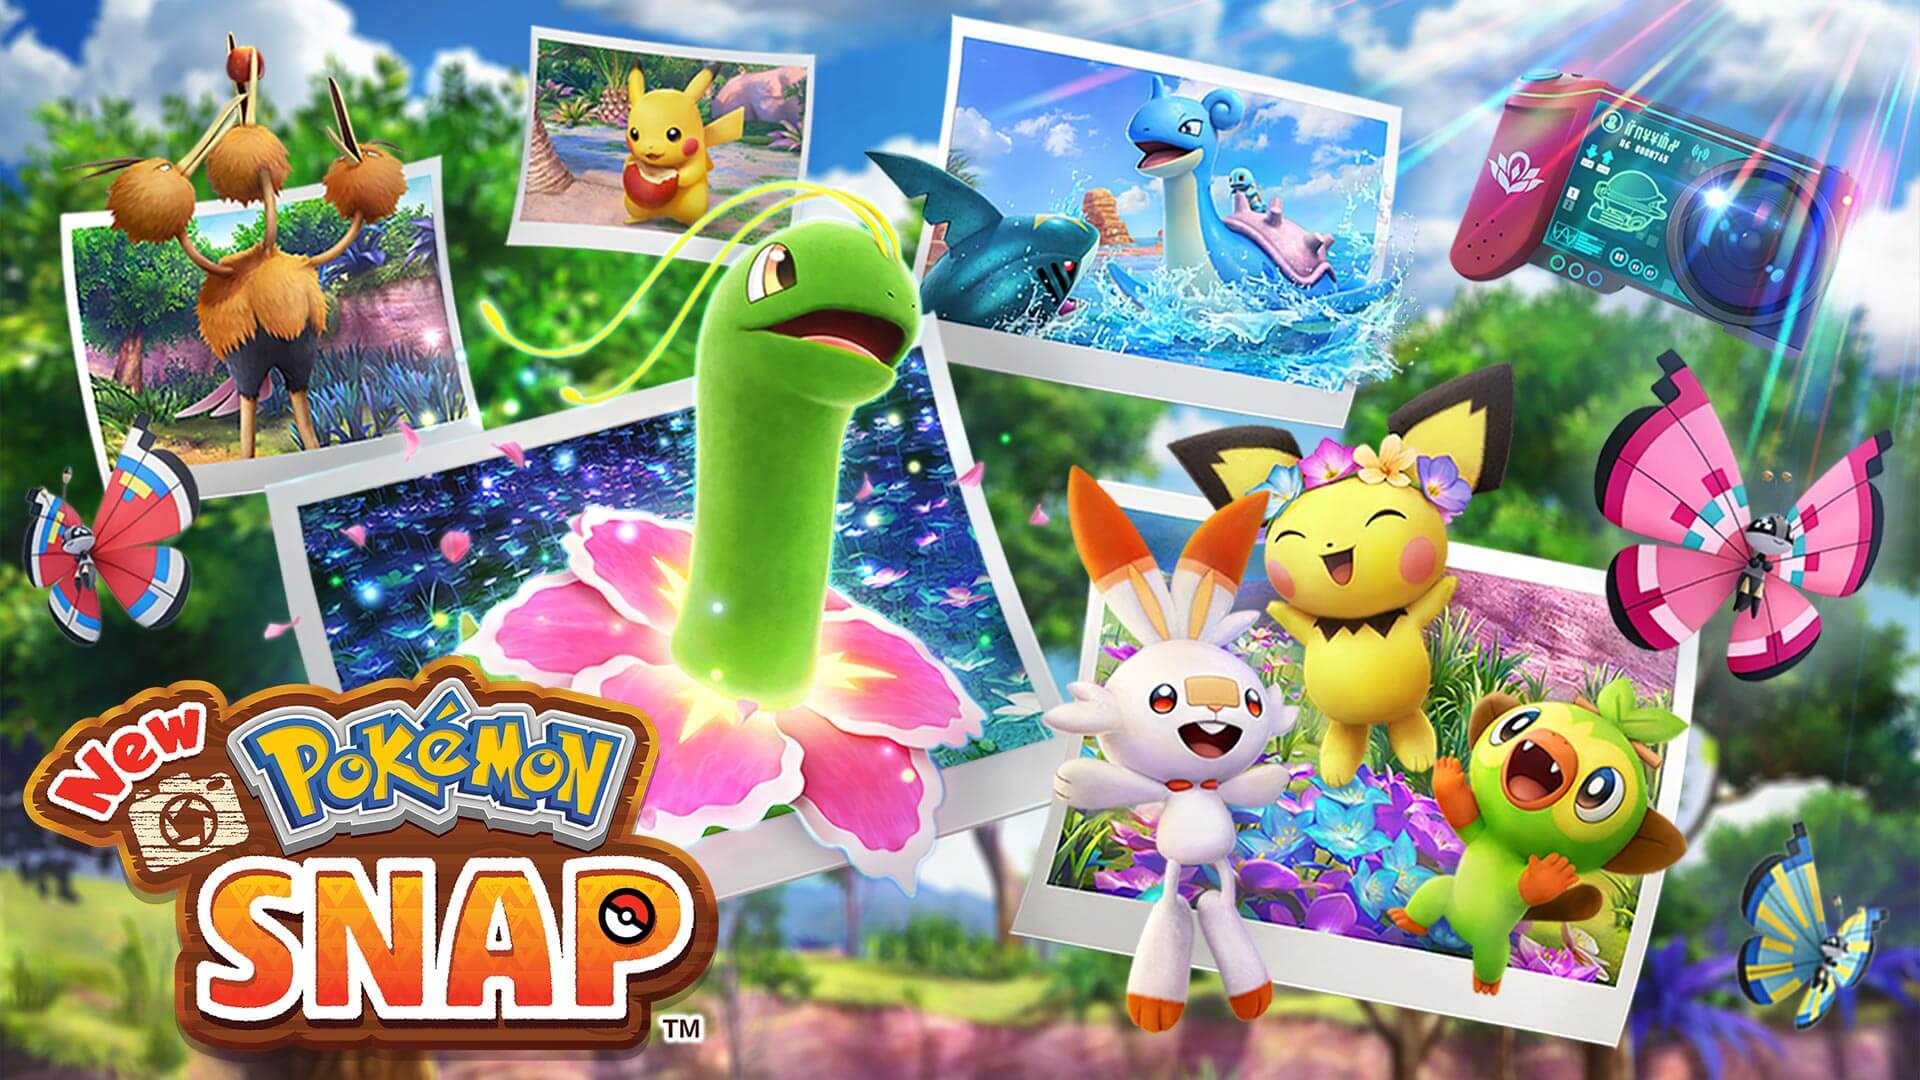 Latest Footage of New Pokémon Snap Released